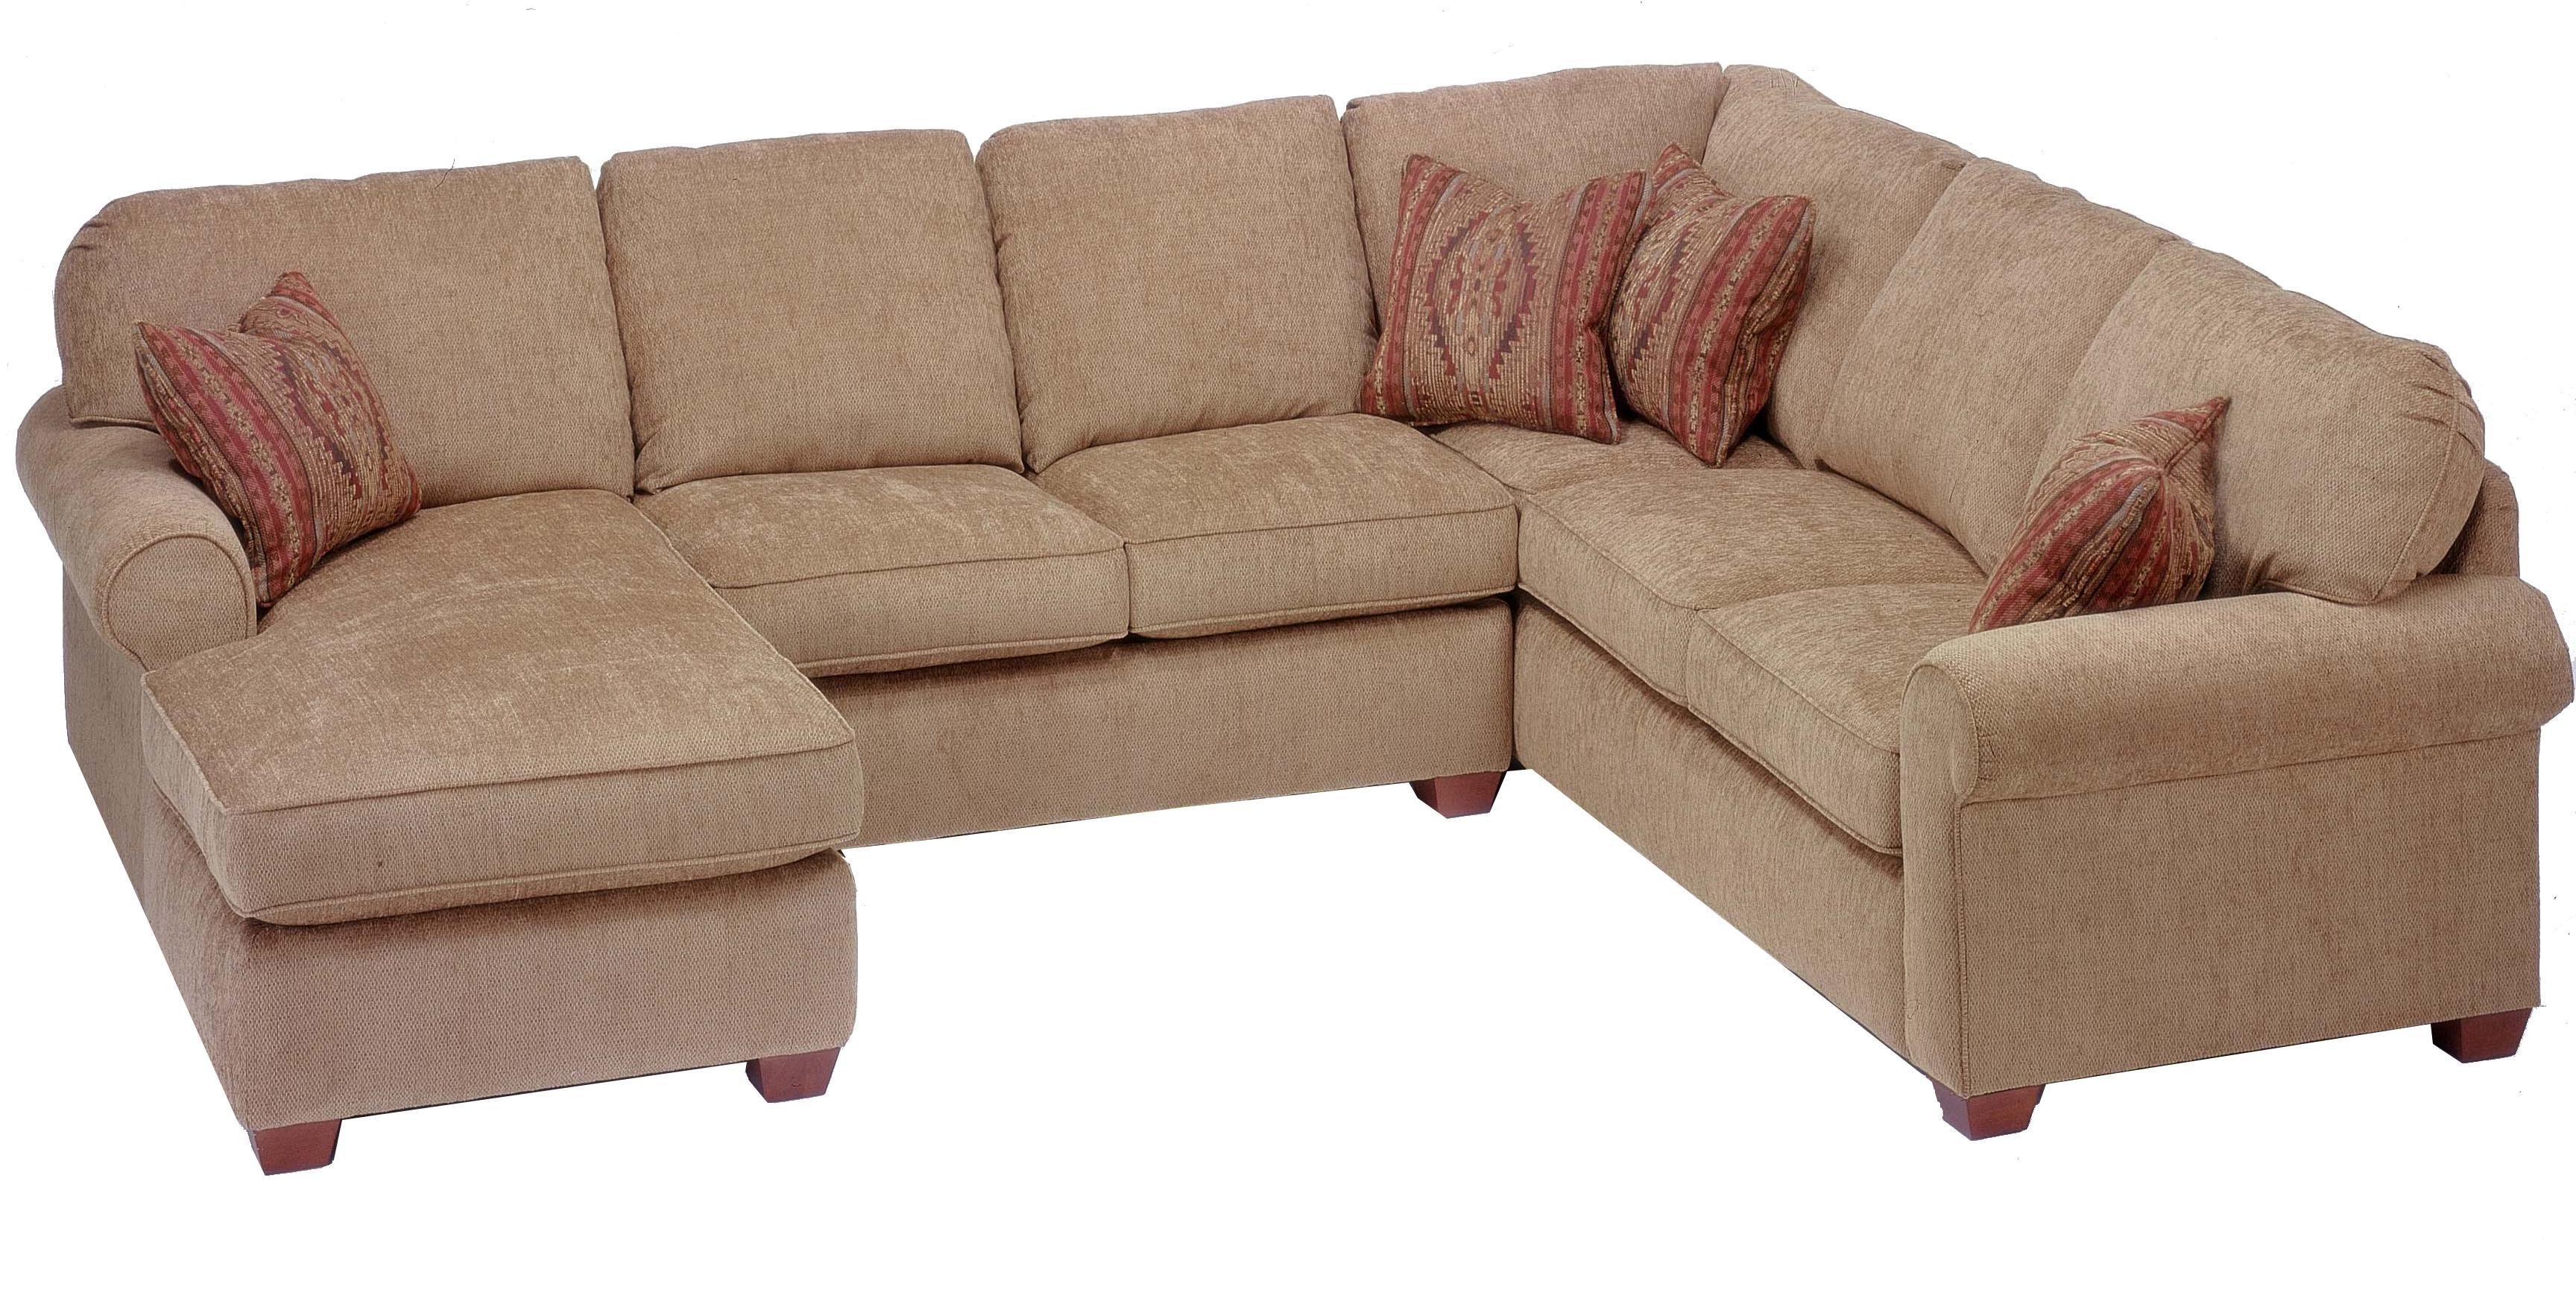 Flexsteel Thornton 3 Piece Sectional With Chaise – Ahfa – Sofa With Regard To Meyer 3 Piece Sectionals With Raf Chaise (Image 11 of 25)